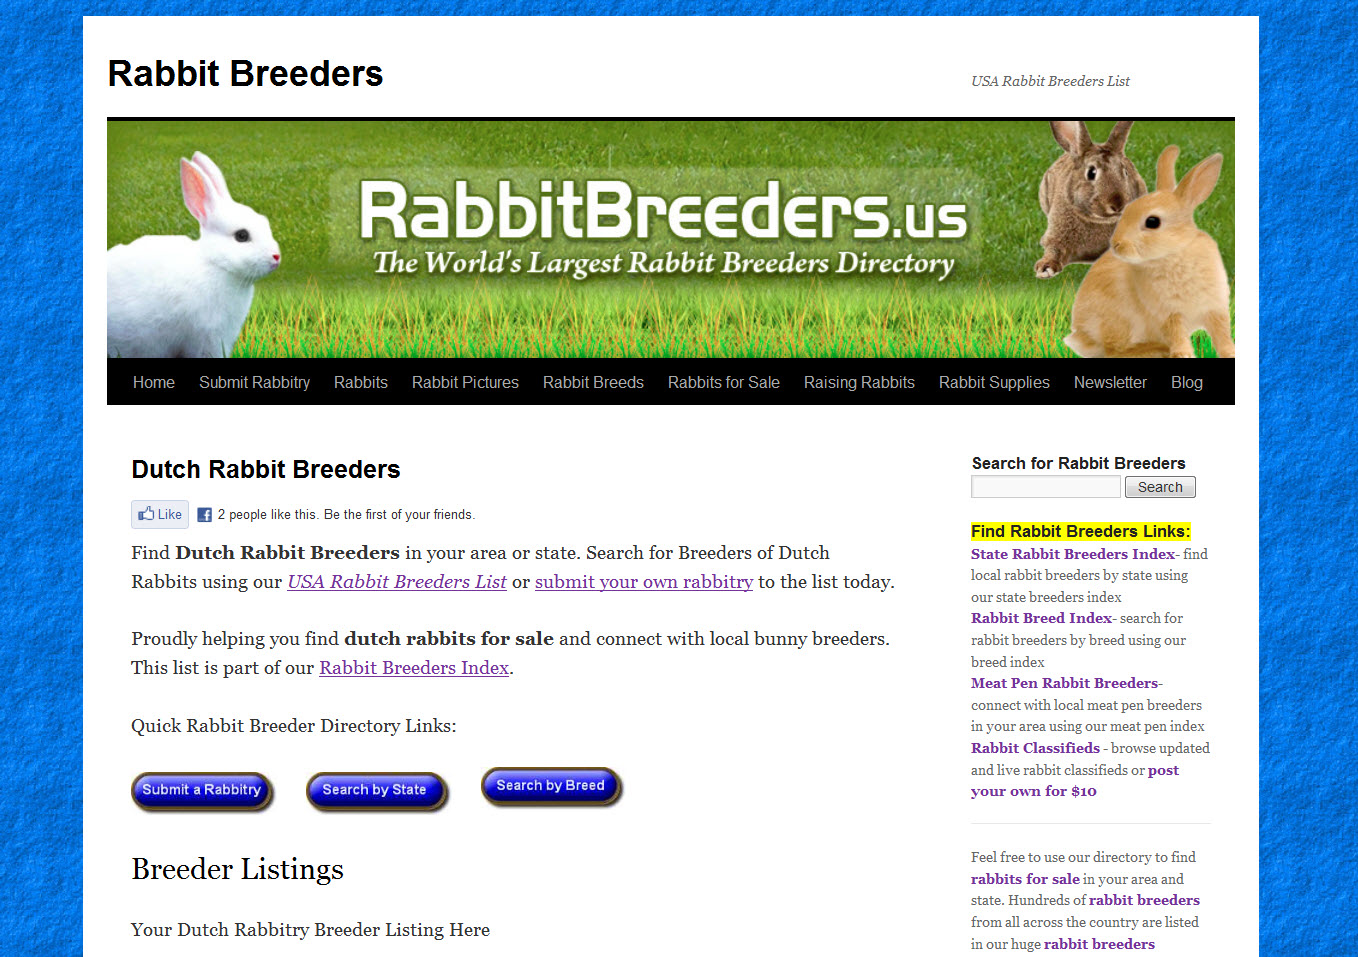 Dutch Rabbit Breeders